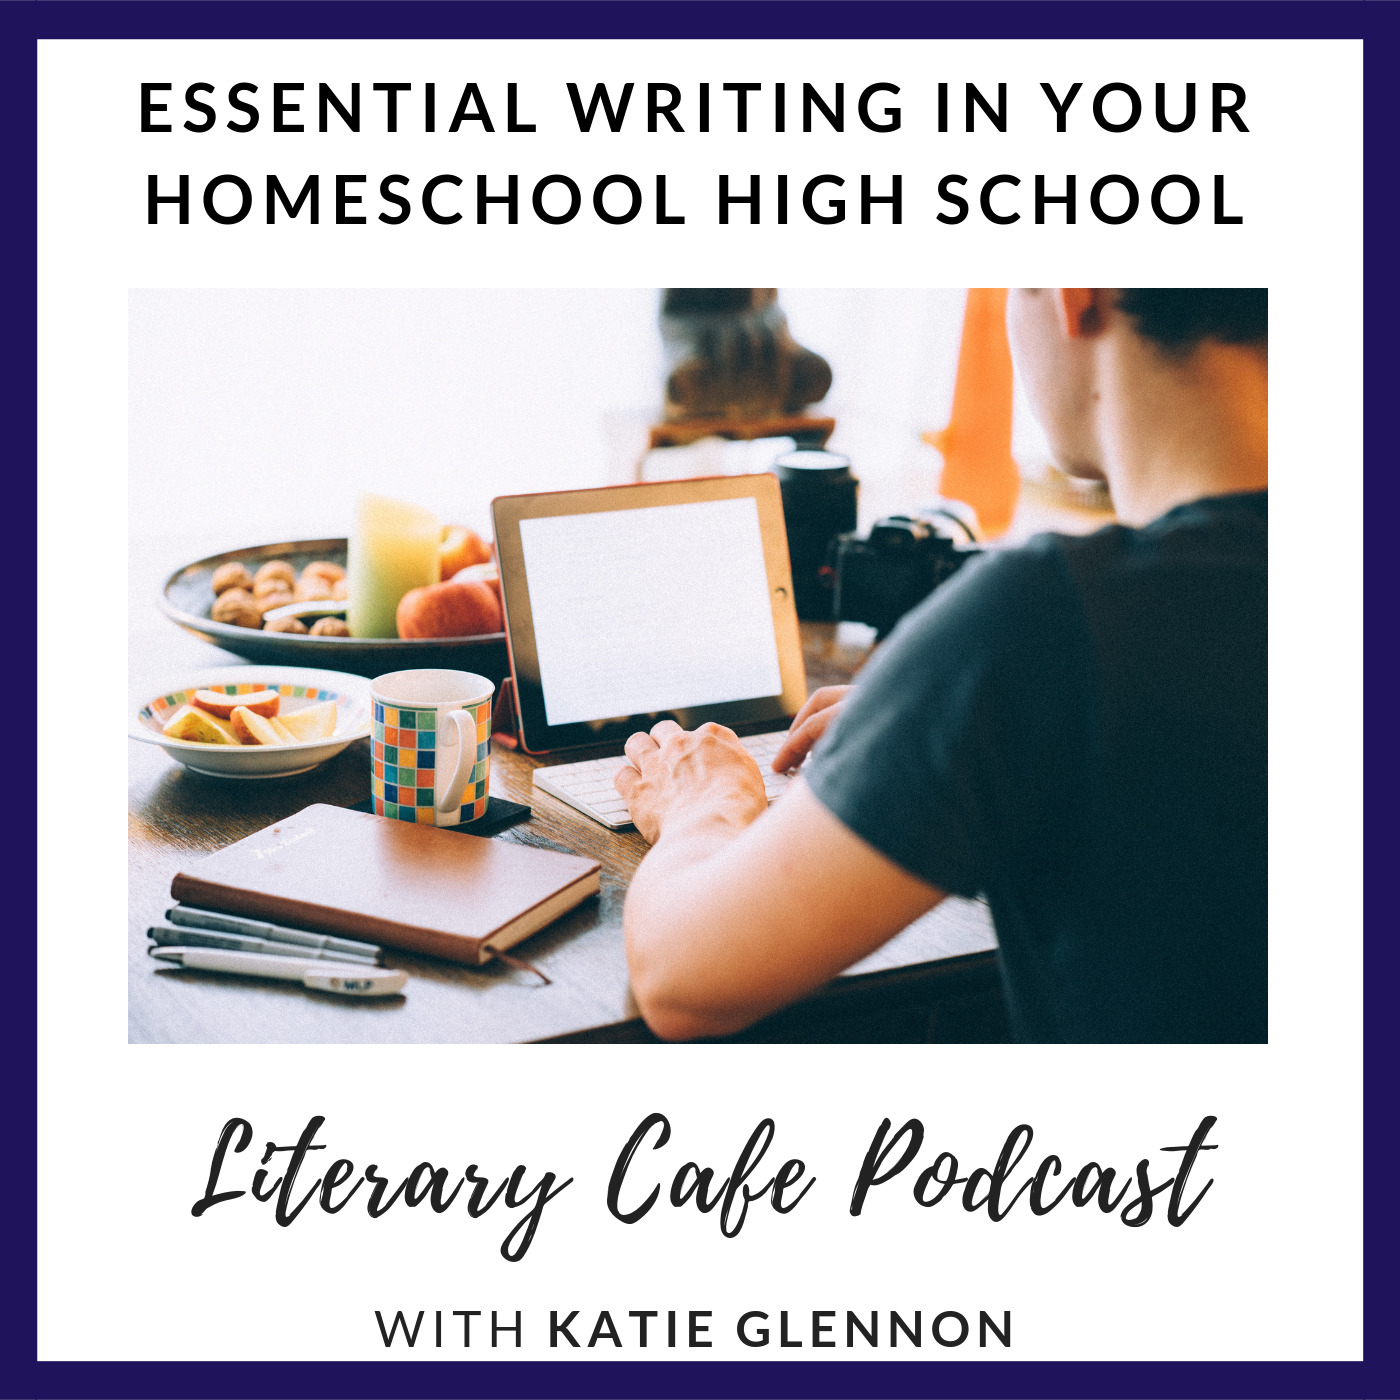 Essential Writing in your Homeschool High School #literarycafepodcast #homeschoolradioshow #homeschool #highschool #writing #essays